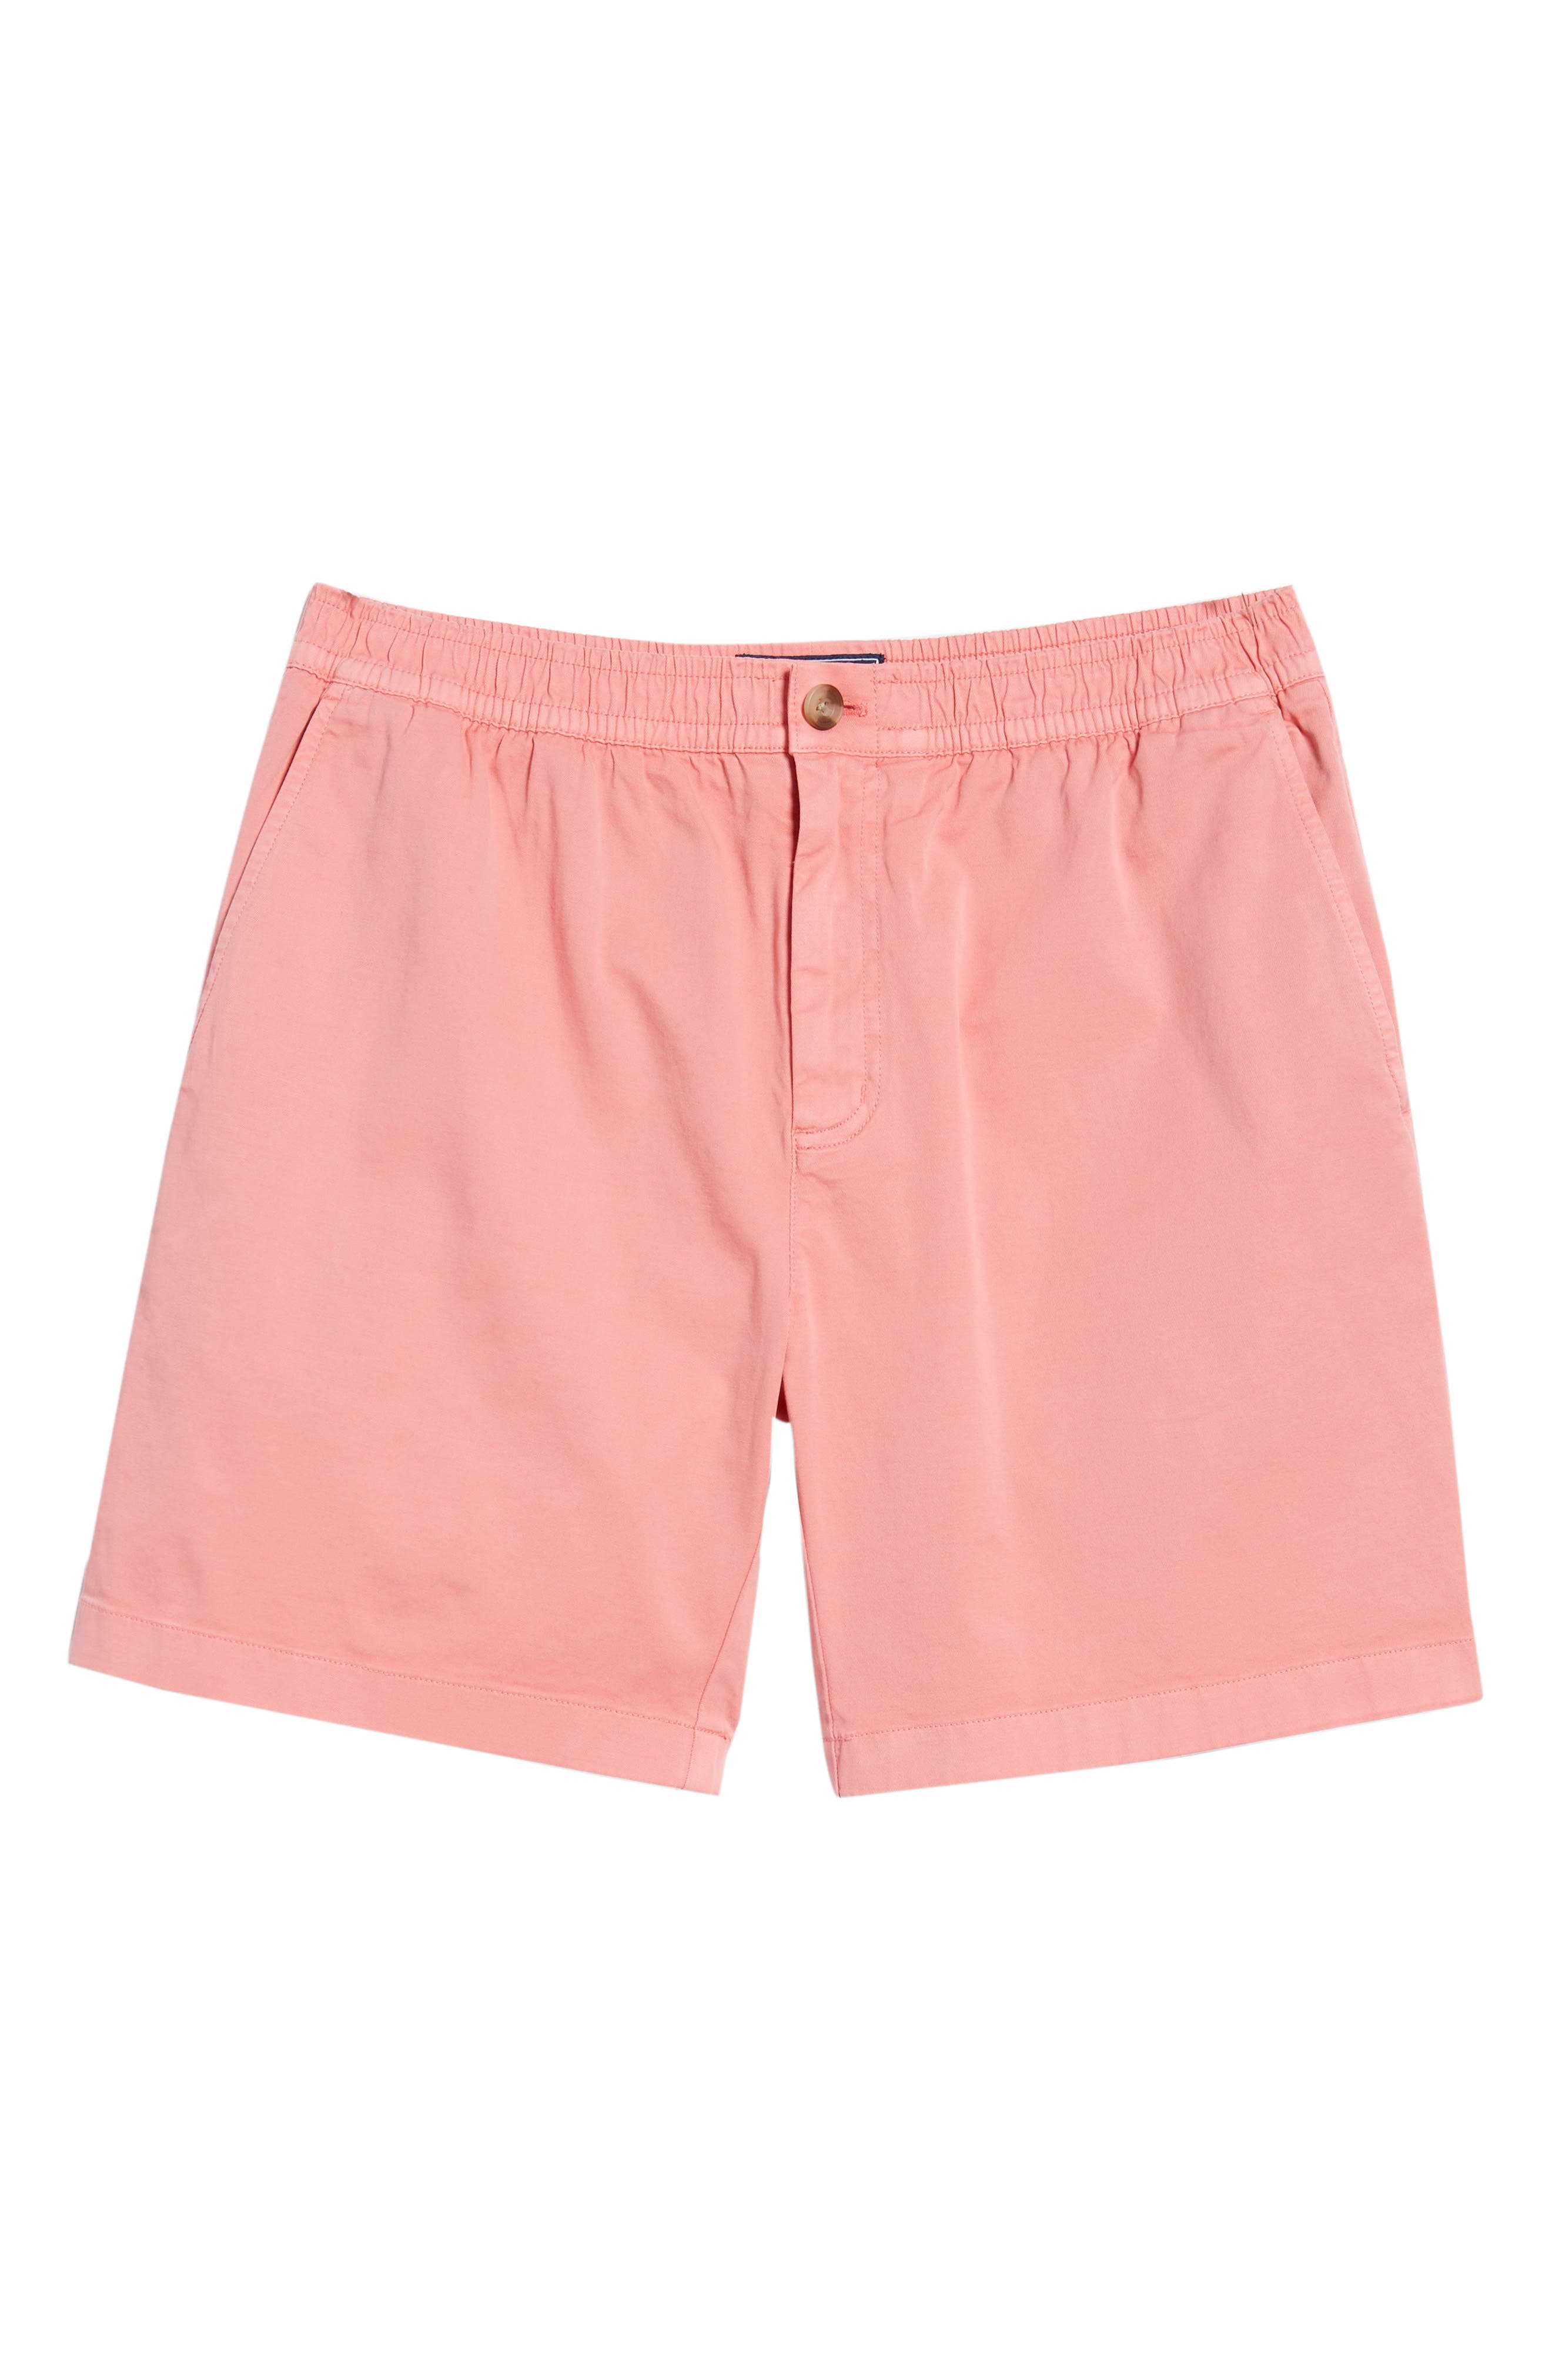 Jetty Stretch Cotton Shorts,                             Alternate thumbnail 6, color,                             Cape Coral